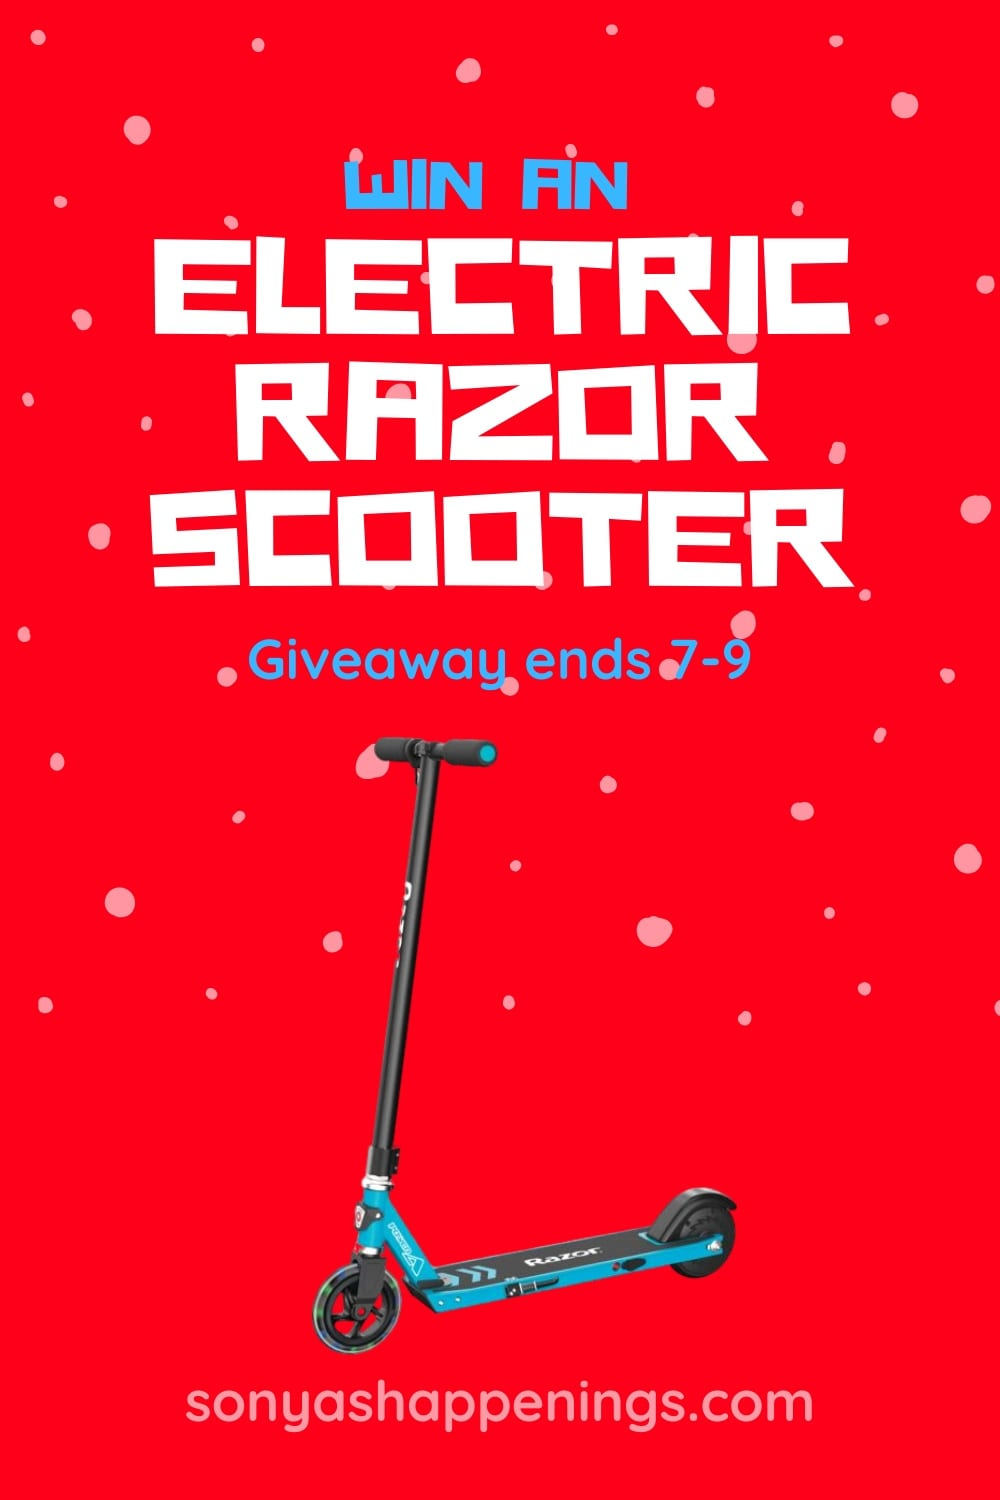 Win An Electric Razor Scooter~ giveaway ends 7-9